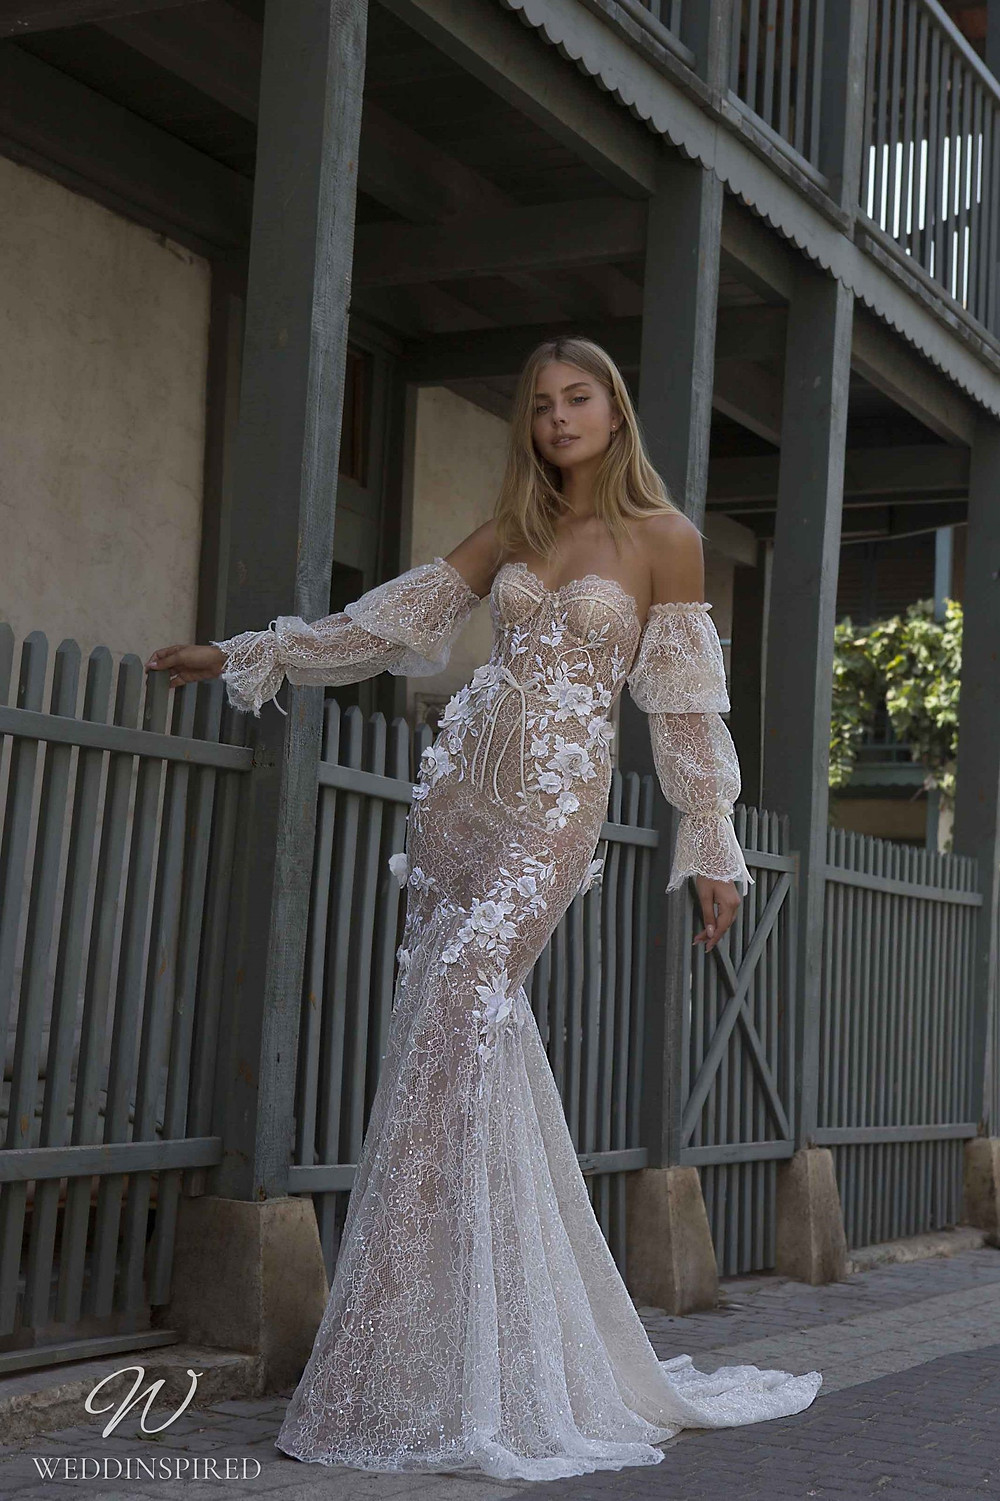 A Berta Priveé No 5 2021 strapless nude sparkly lace mermaid wedding dress with removable sleeves